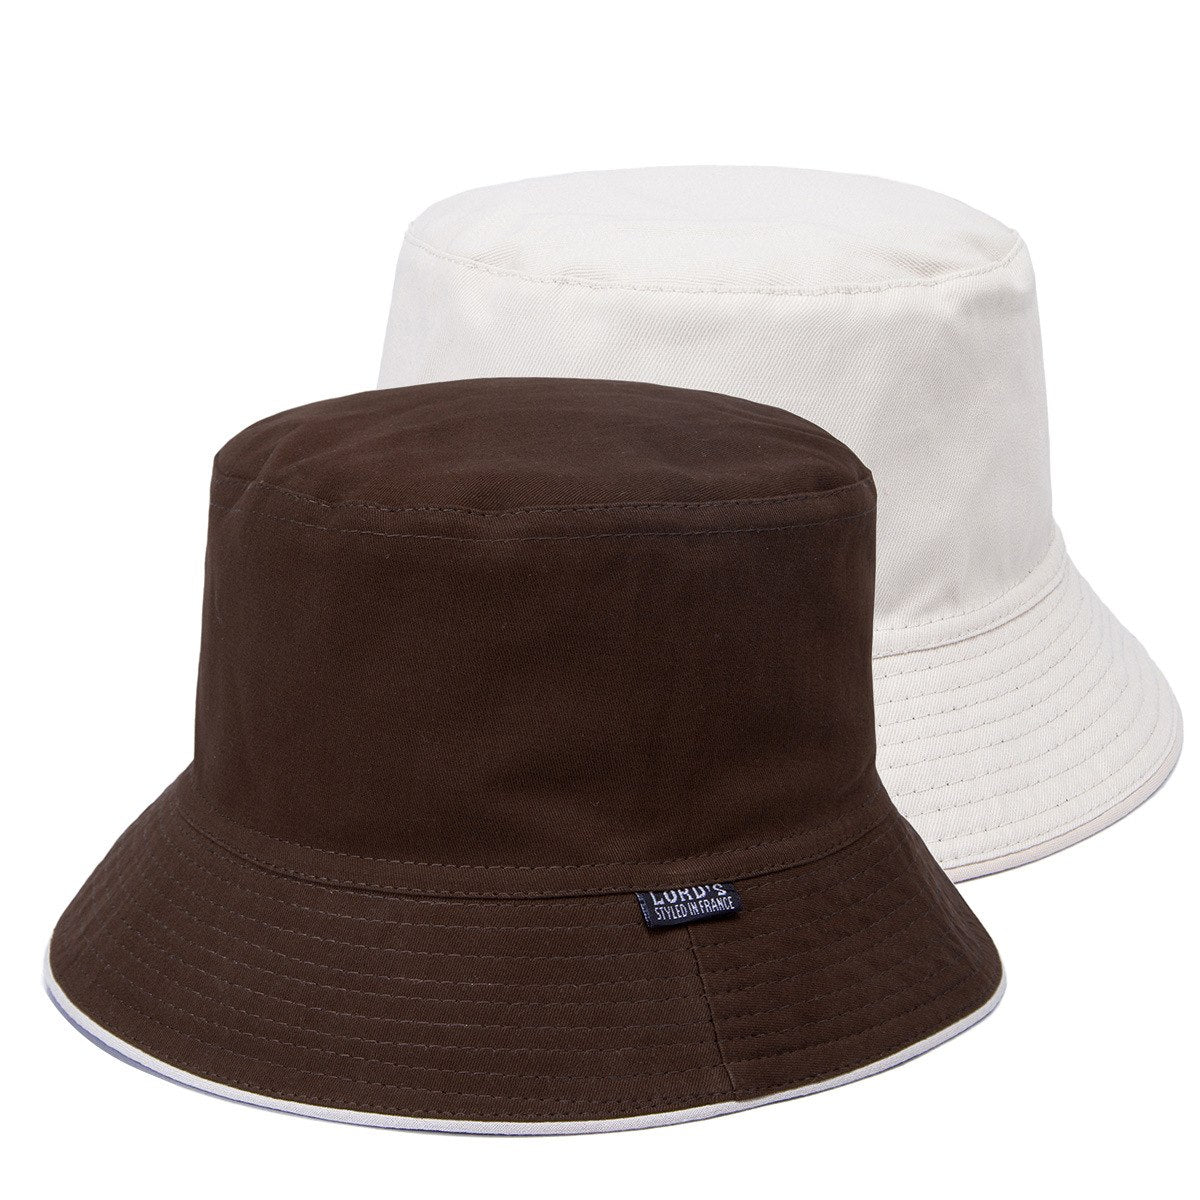 60c0b8874257f 2017 plain Solid bucket hats men reversible two sides can wear 100% co –  oePPeo - Master of Caps & Hats